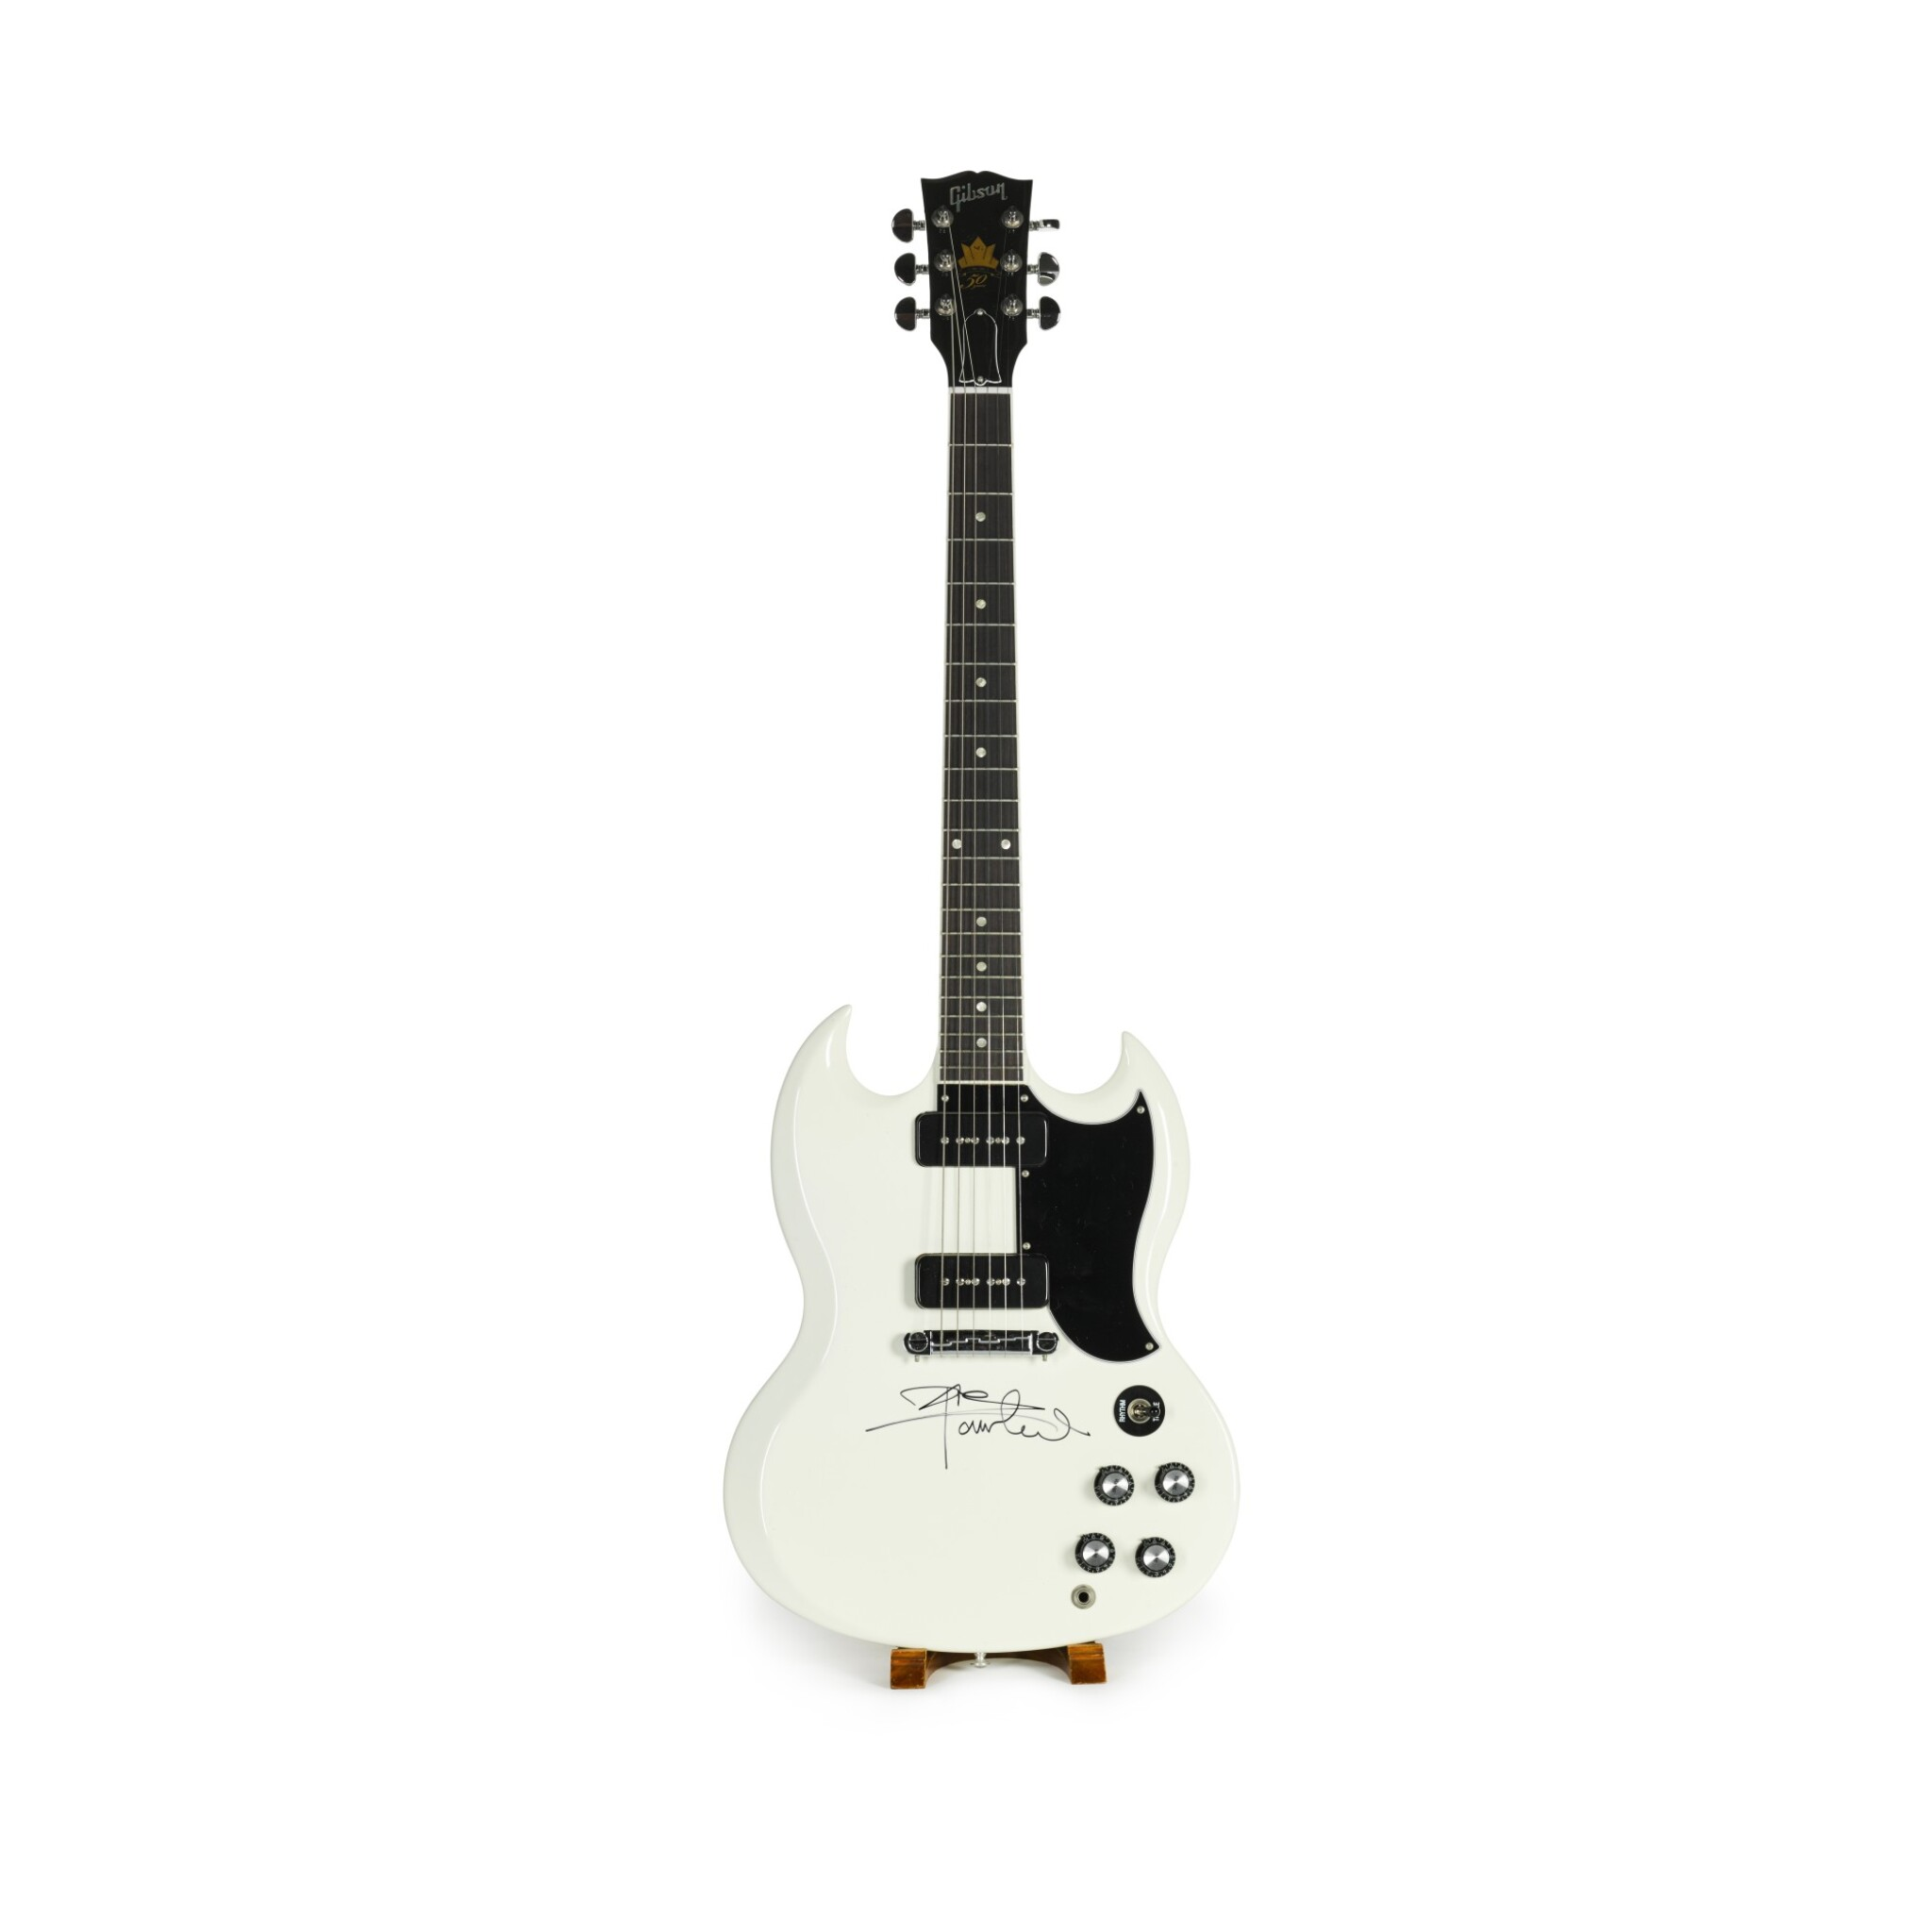 View 1 of Lot 12. Pete Townshend's Gibson 50th Anniversary SG Electric Guitar, 2011.